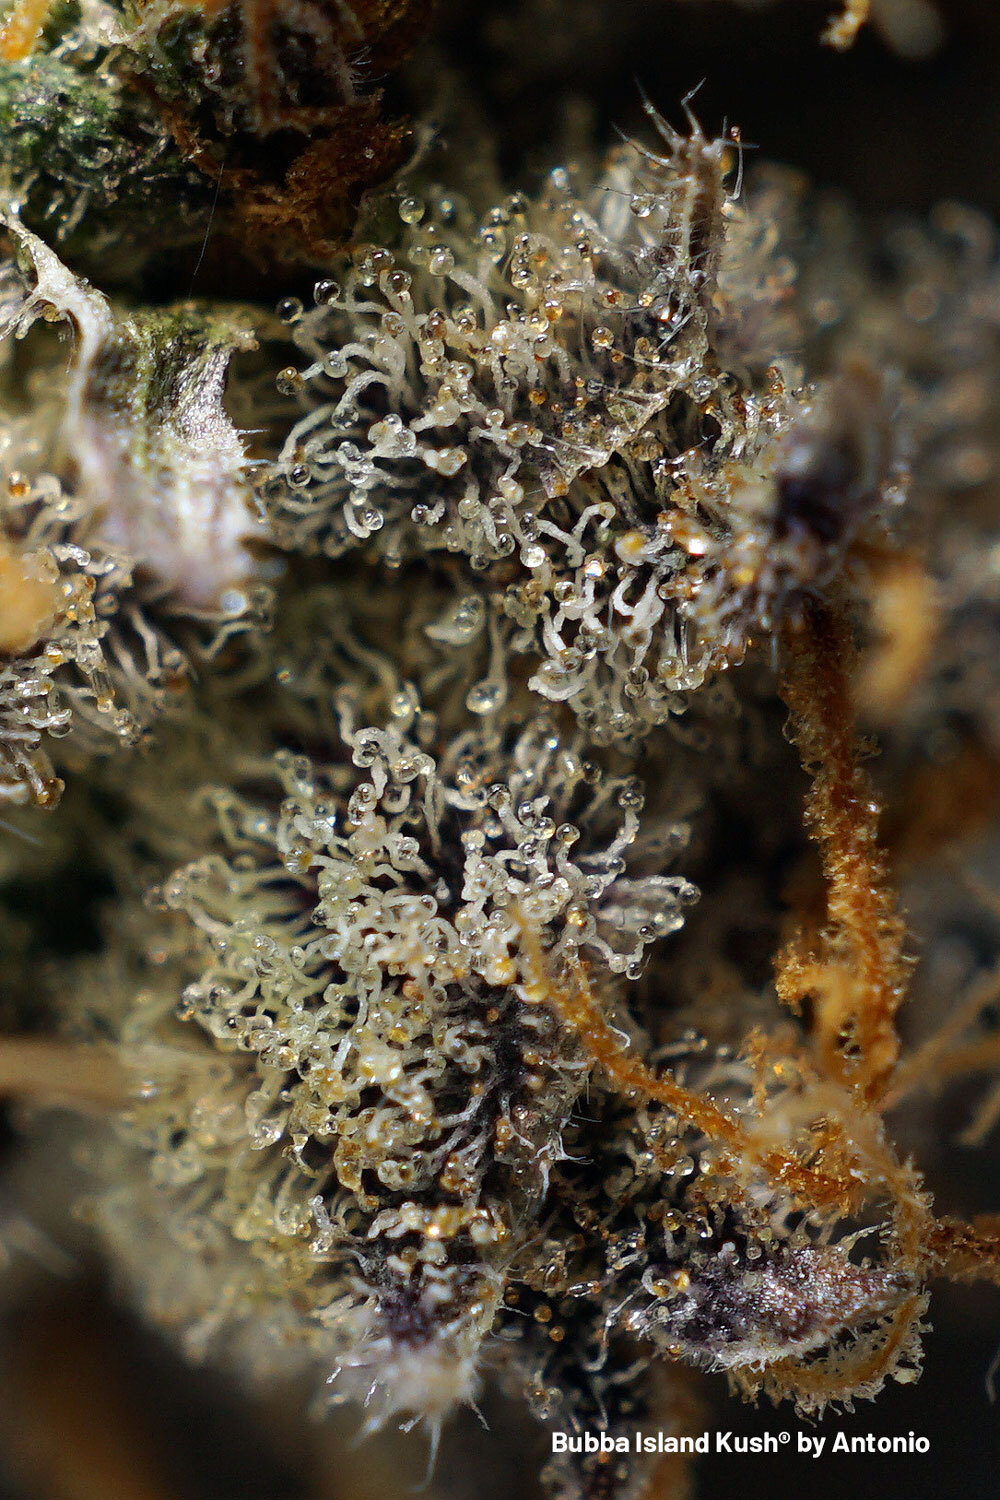 Bubba Island Kush super frosty nugs with thick layers of cloudy/amber trichomes.